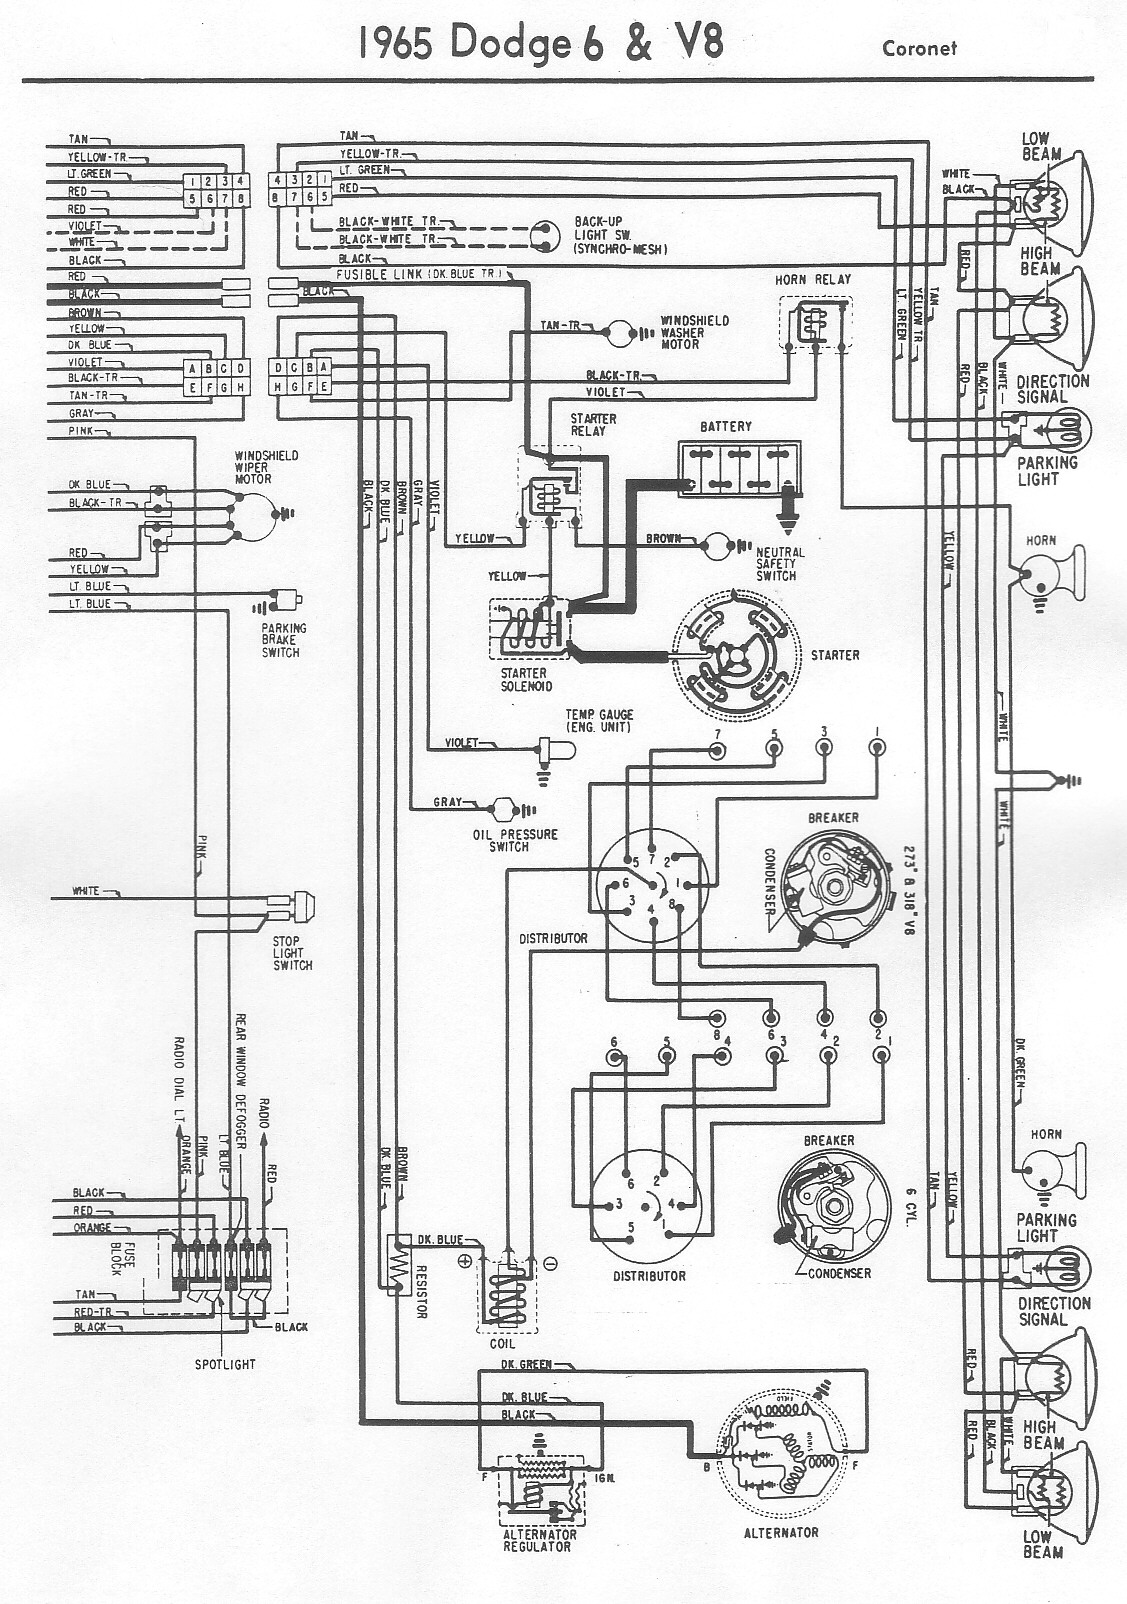 1965 plymouth satellite wiring diagram trusted wiring diagram 1968 coronet wiring diagram 1968 satellite wiring diagram [ 1127 x 1604 Pixel ]